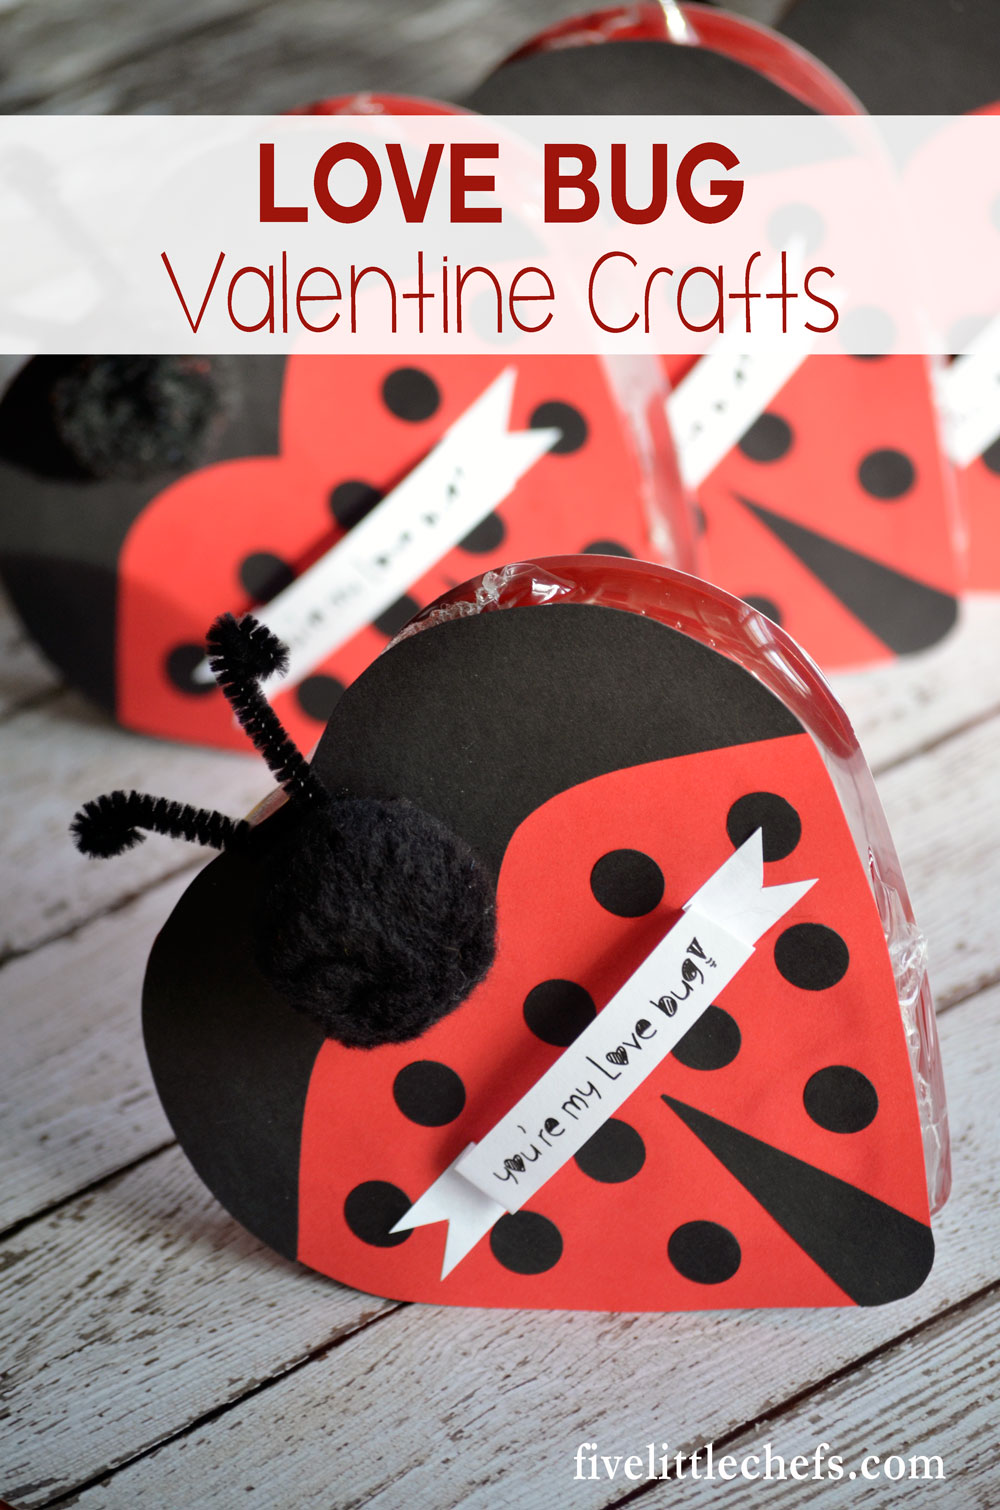 Valentine love bug craft - Love Bug Chocolate Craft Is A Perfect Valentine S Day Gift For Kids Or For A Family